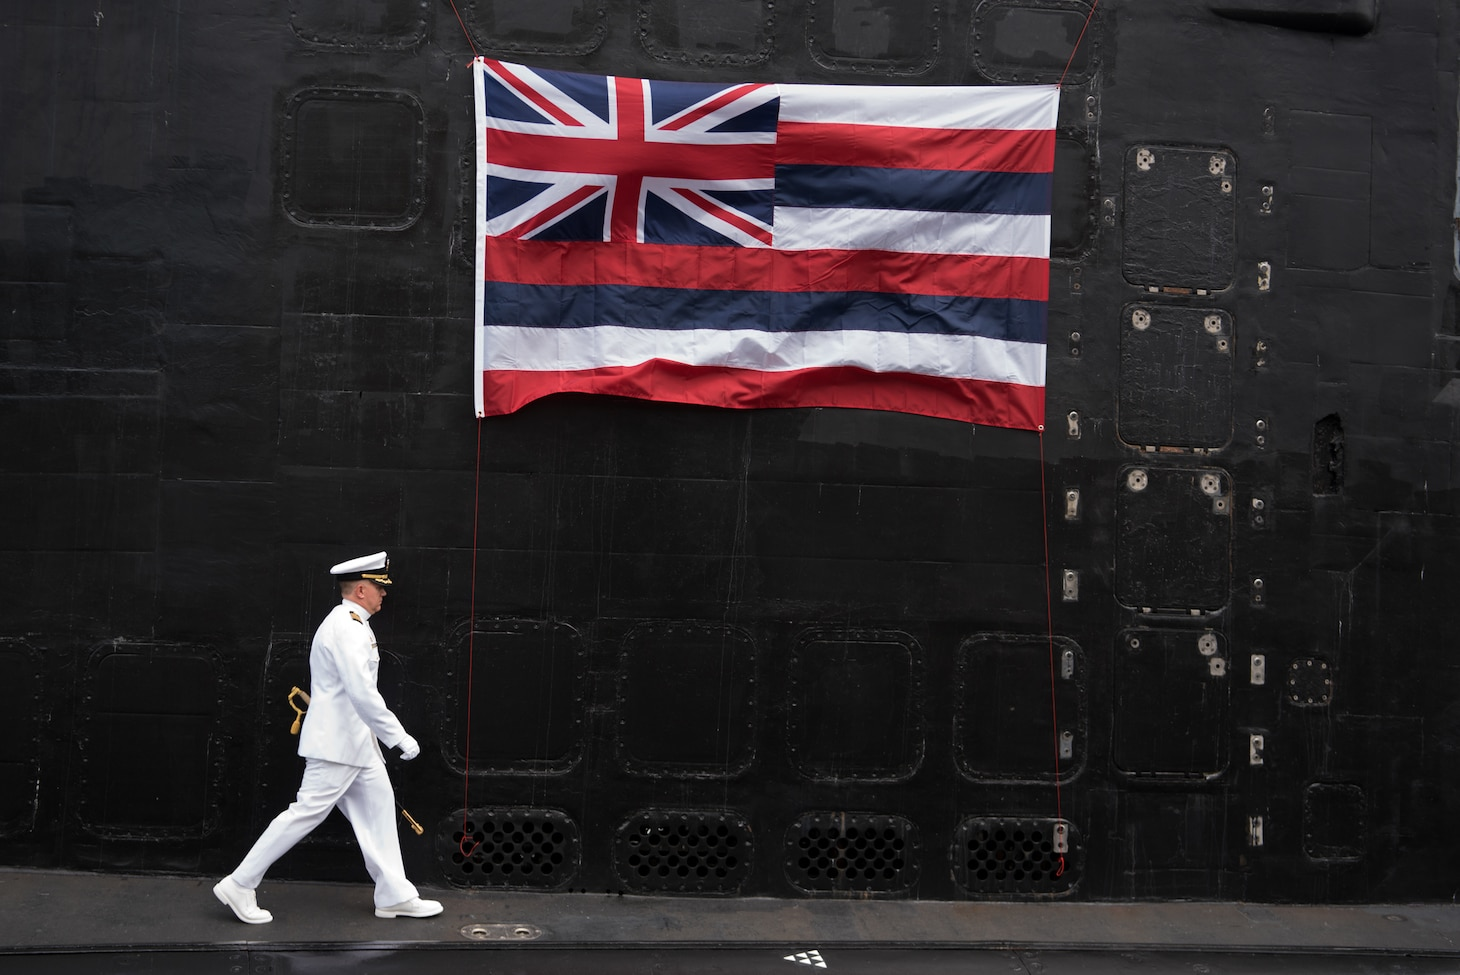 Capt. Richard Seif, commander, Submarine Squadron One, walks to the podium on the Virginia-class fast-attack submarine USS Hawaii (SSN 776) during a change of command ceremony on the submarine piers in Joint Base Pearl Harbor-Hickam, August 2. Cmdr. Sterling S. Jordan relieved Cmdr. John C. Roussakies as Hawaii's commanding officer.